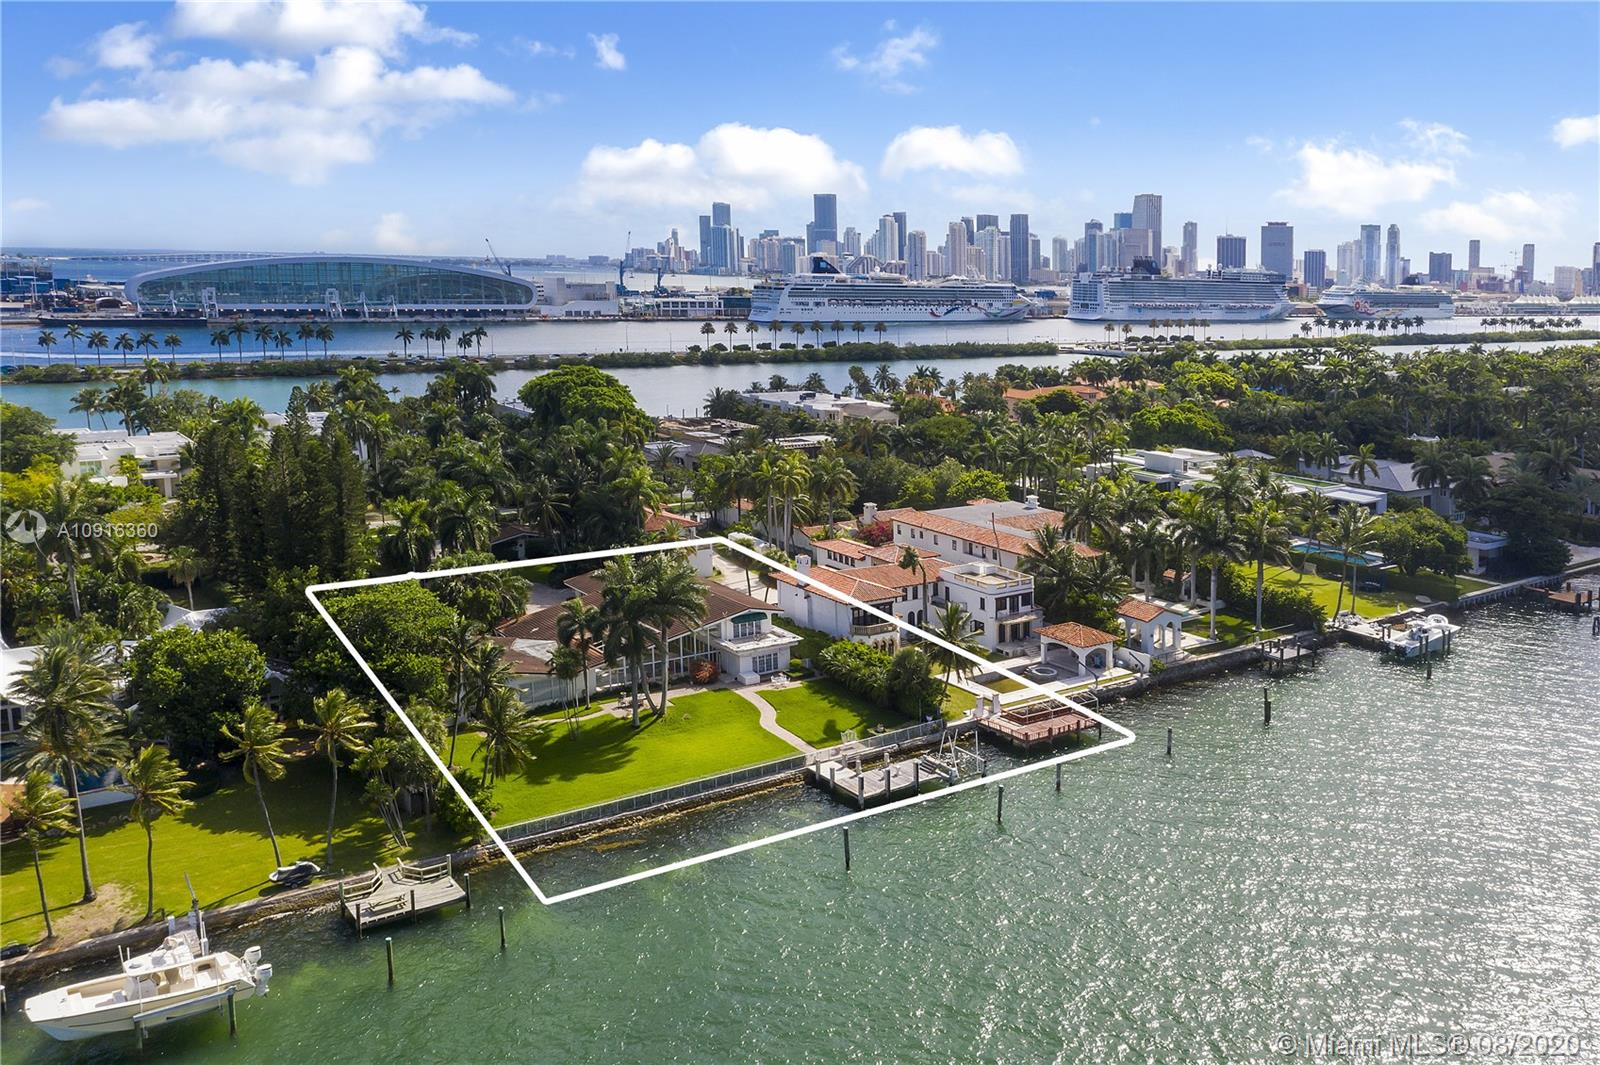 39 Palm Ave Luxury Real Estate